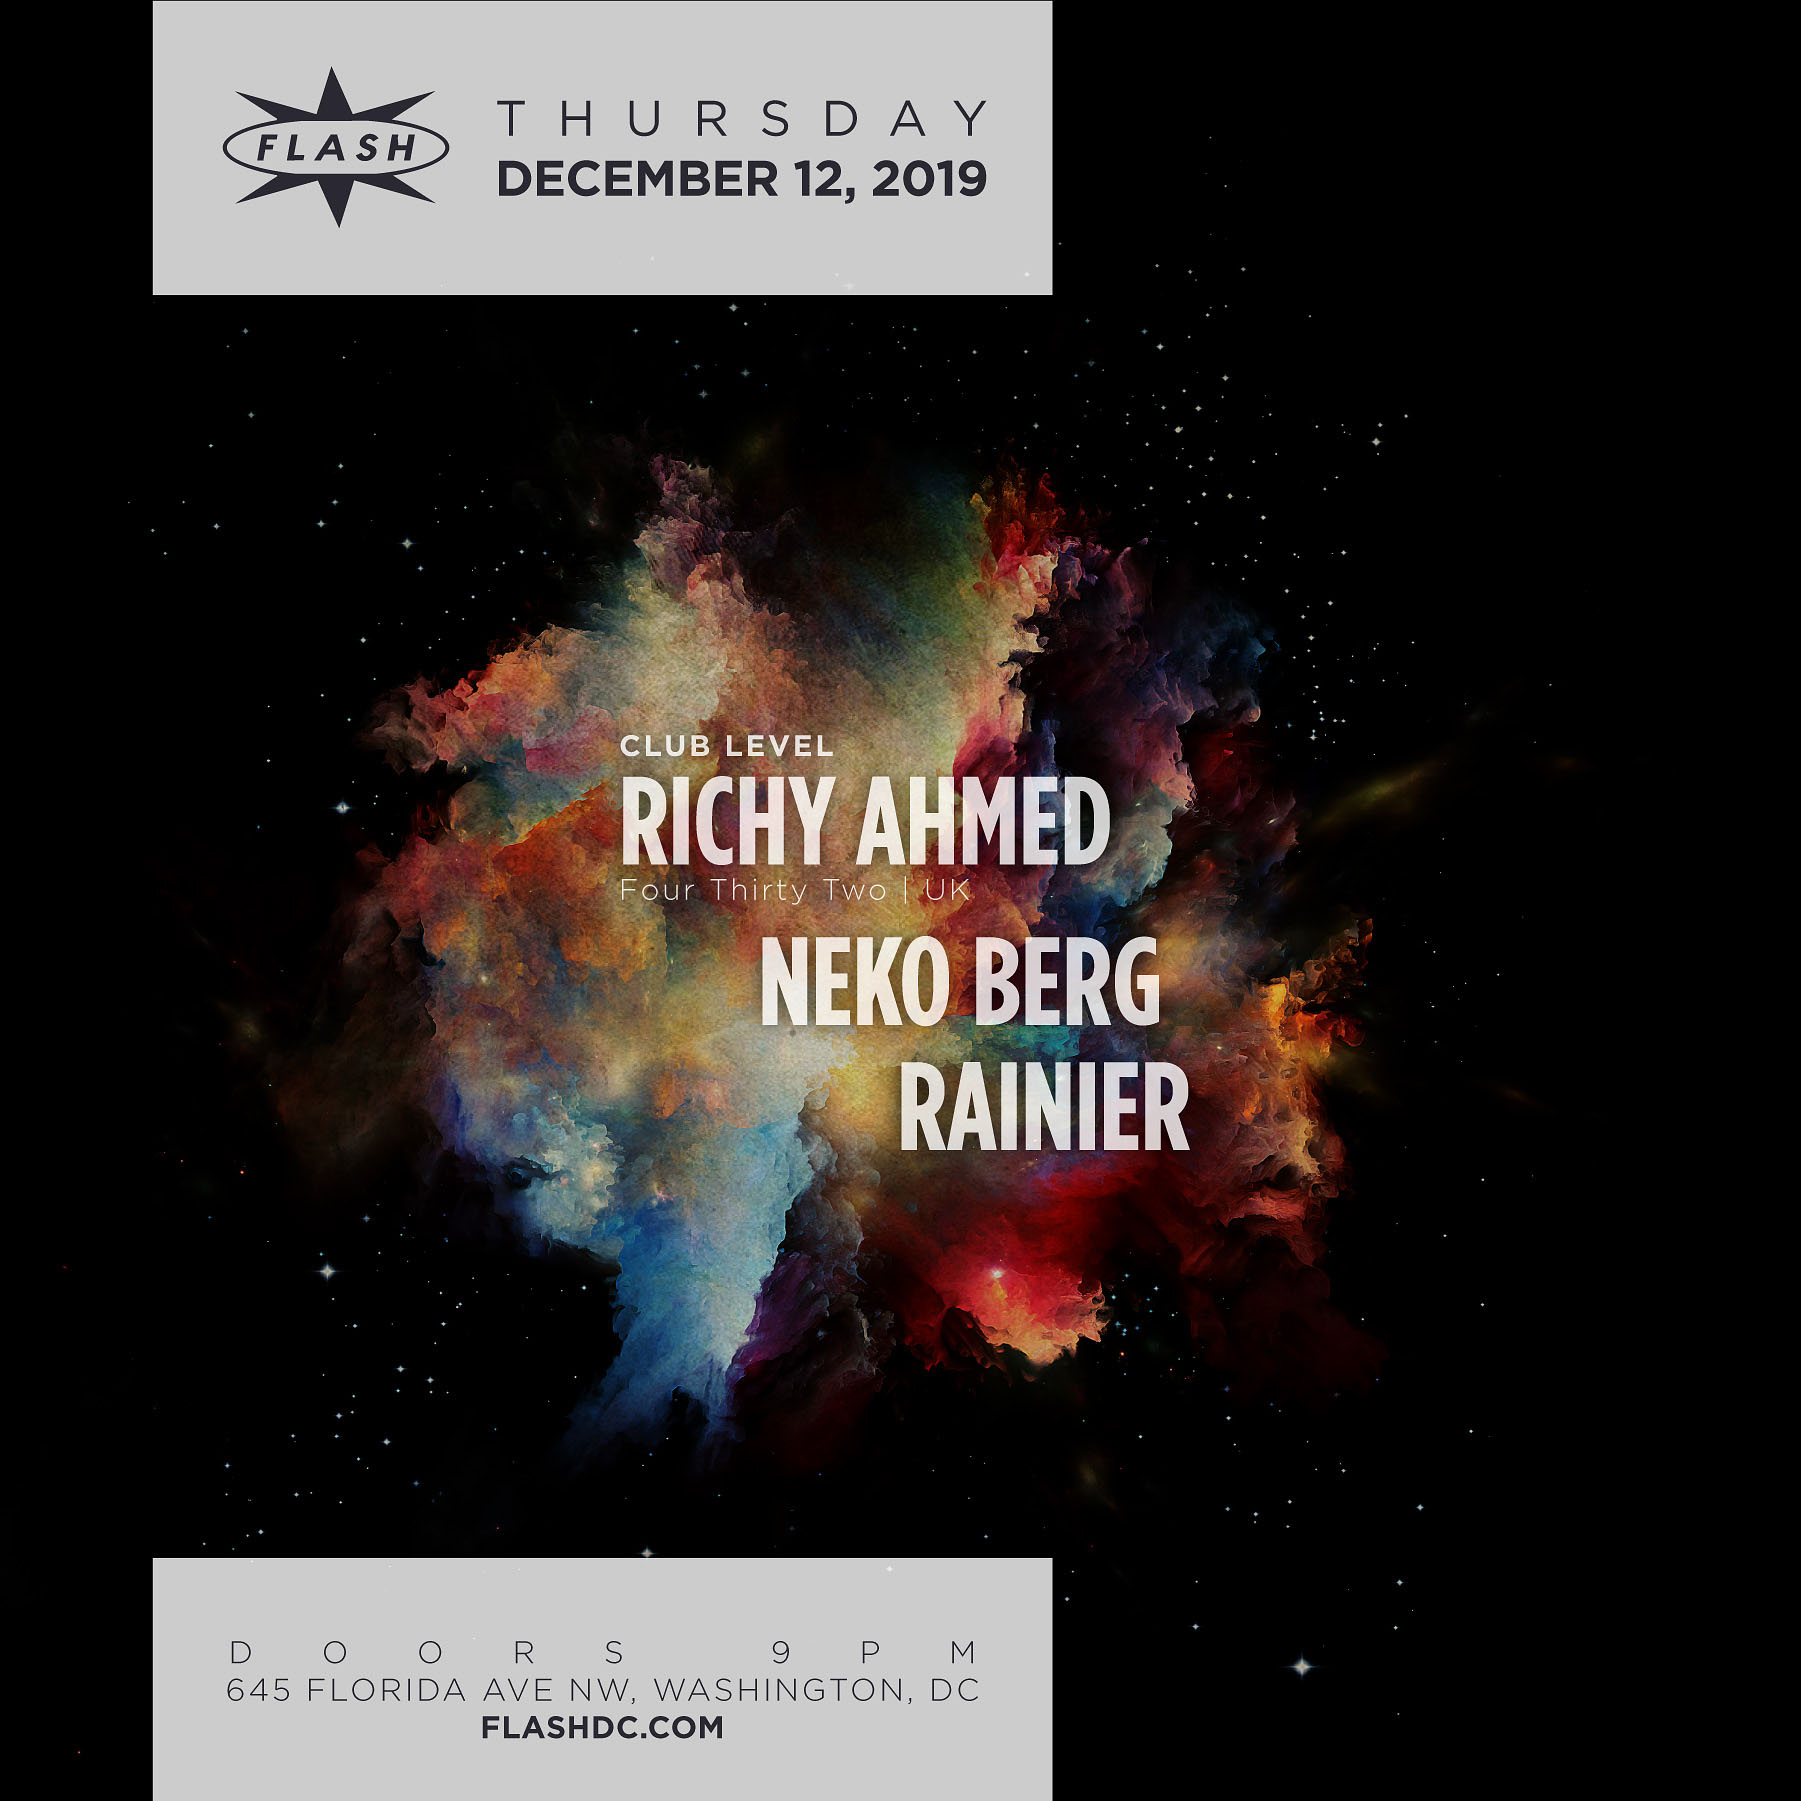 Richy Ahmed event thumbnail